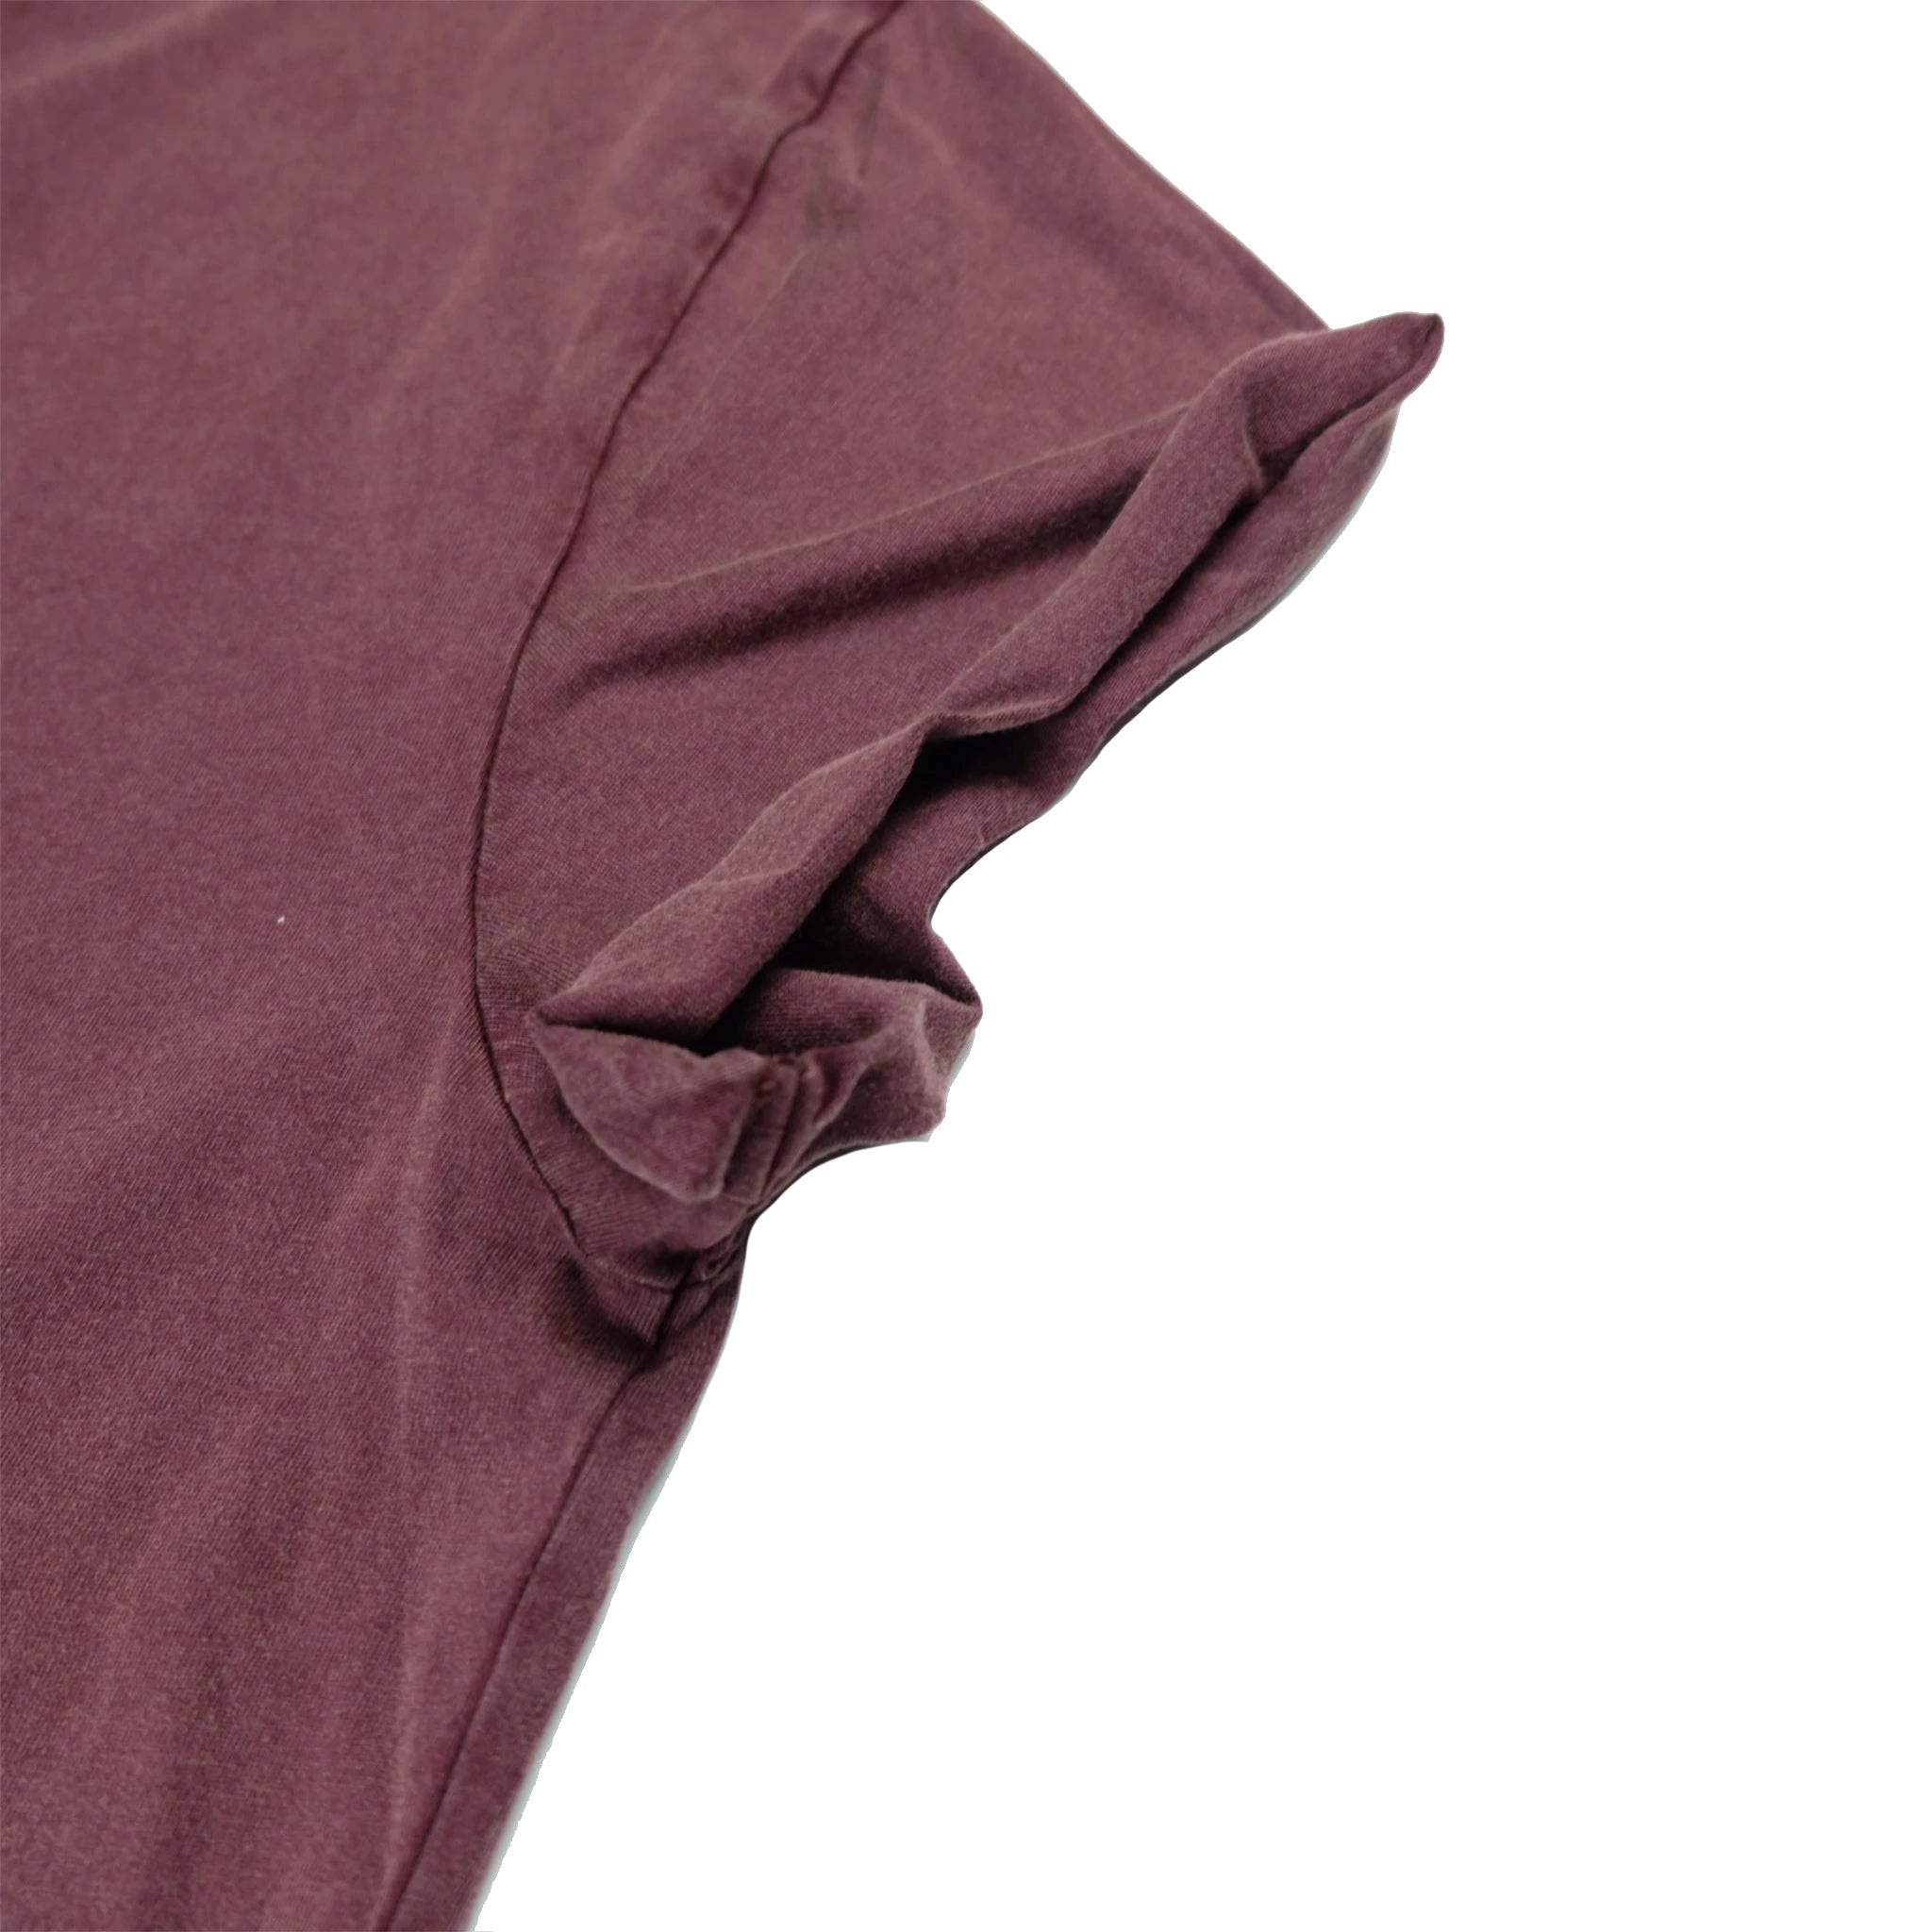 Women's Hoy Water Craft Organic T-shirt - Dusty Burgundy